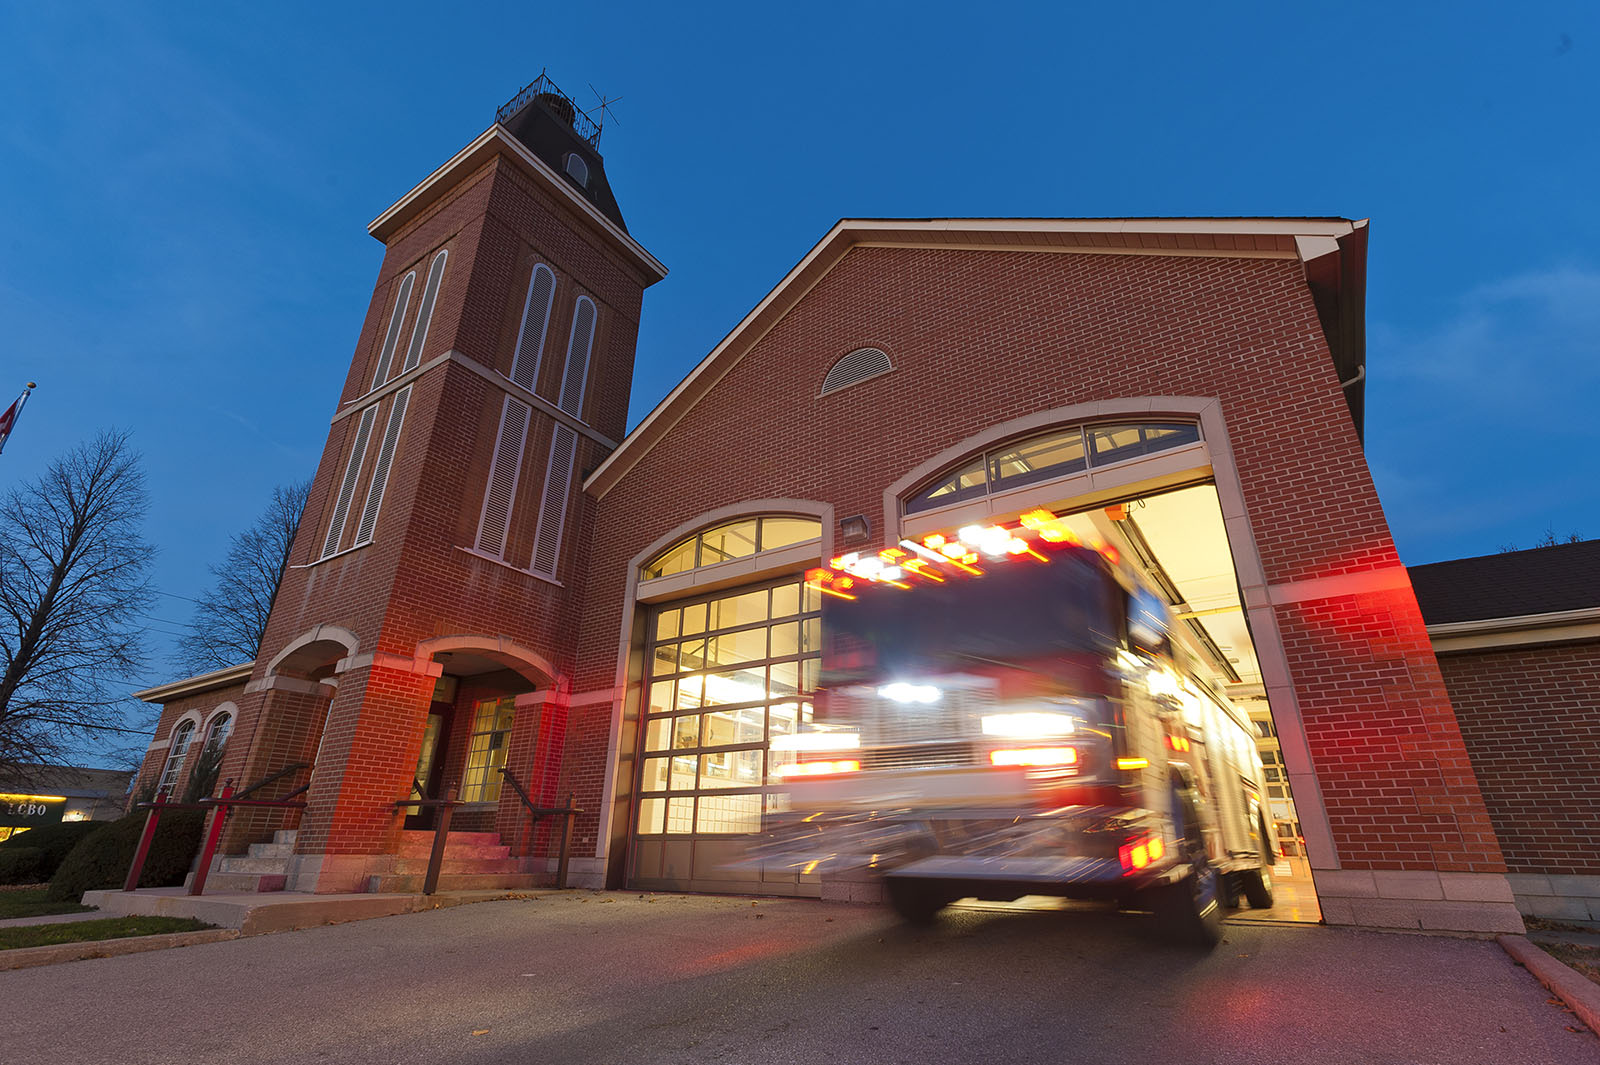 Fire engine responding to a call at Fire Station in Markham, ON